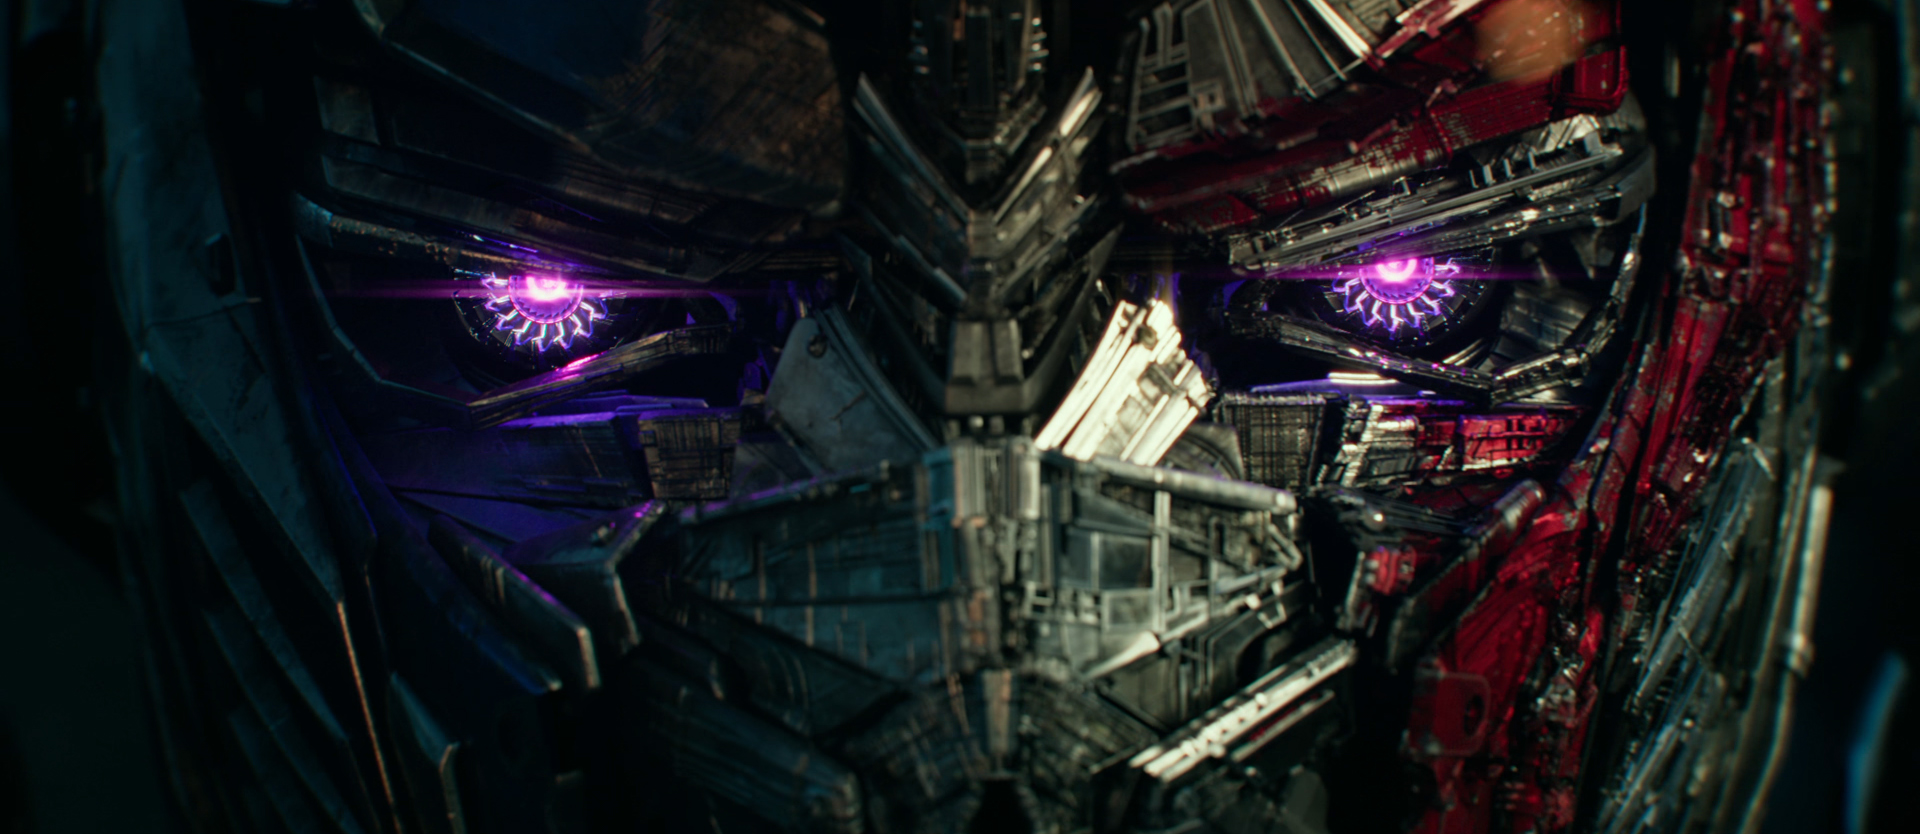 Transformers The Last Knight. Image Credit: Paramount.